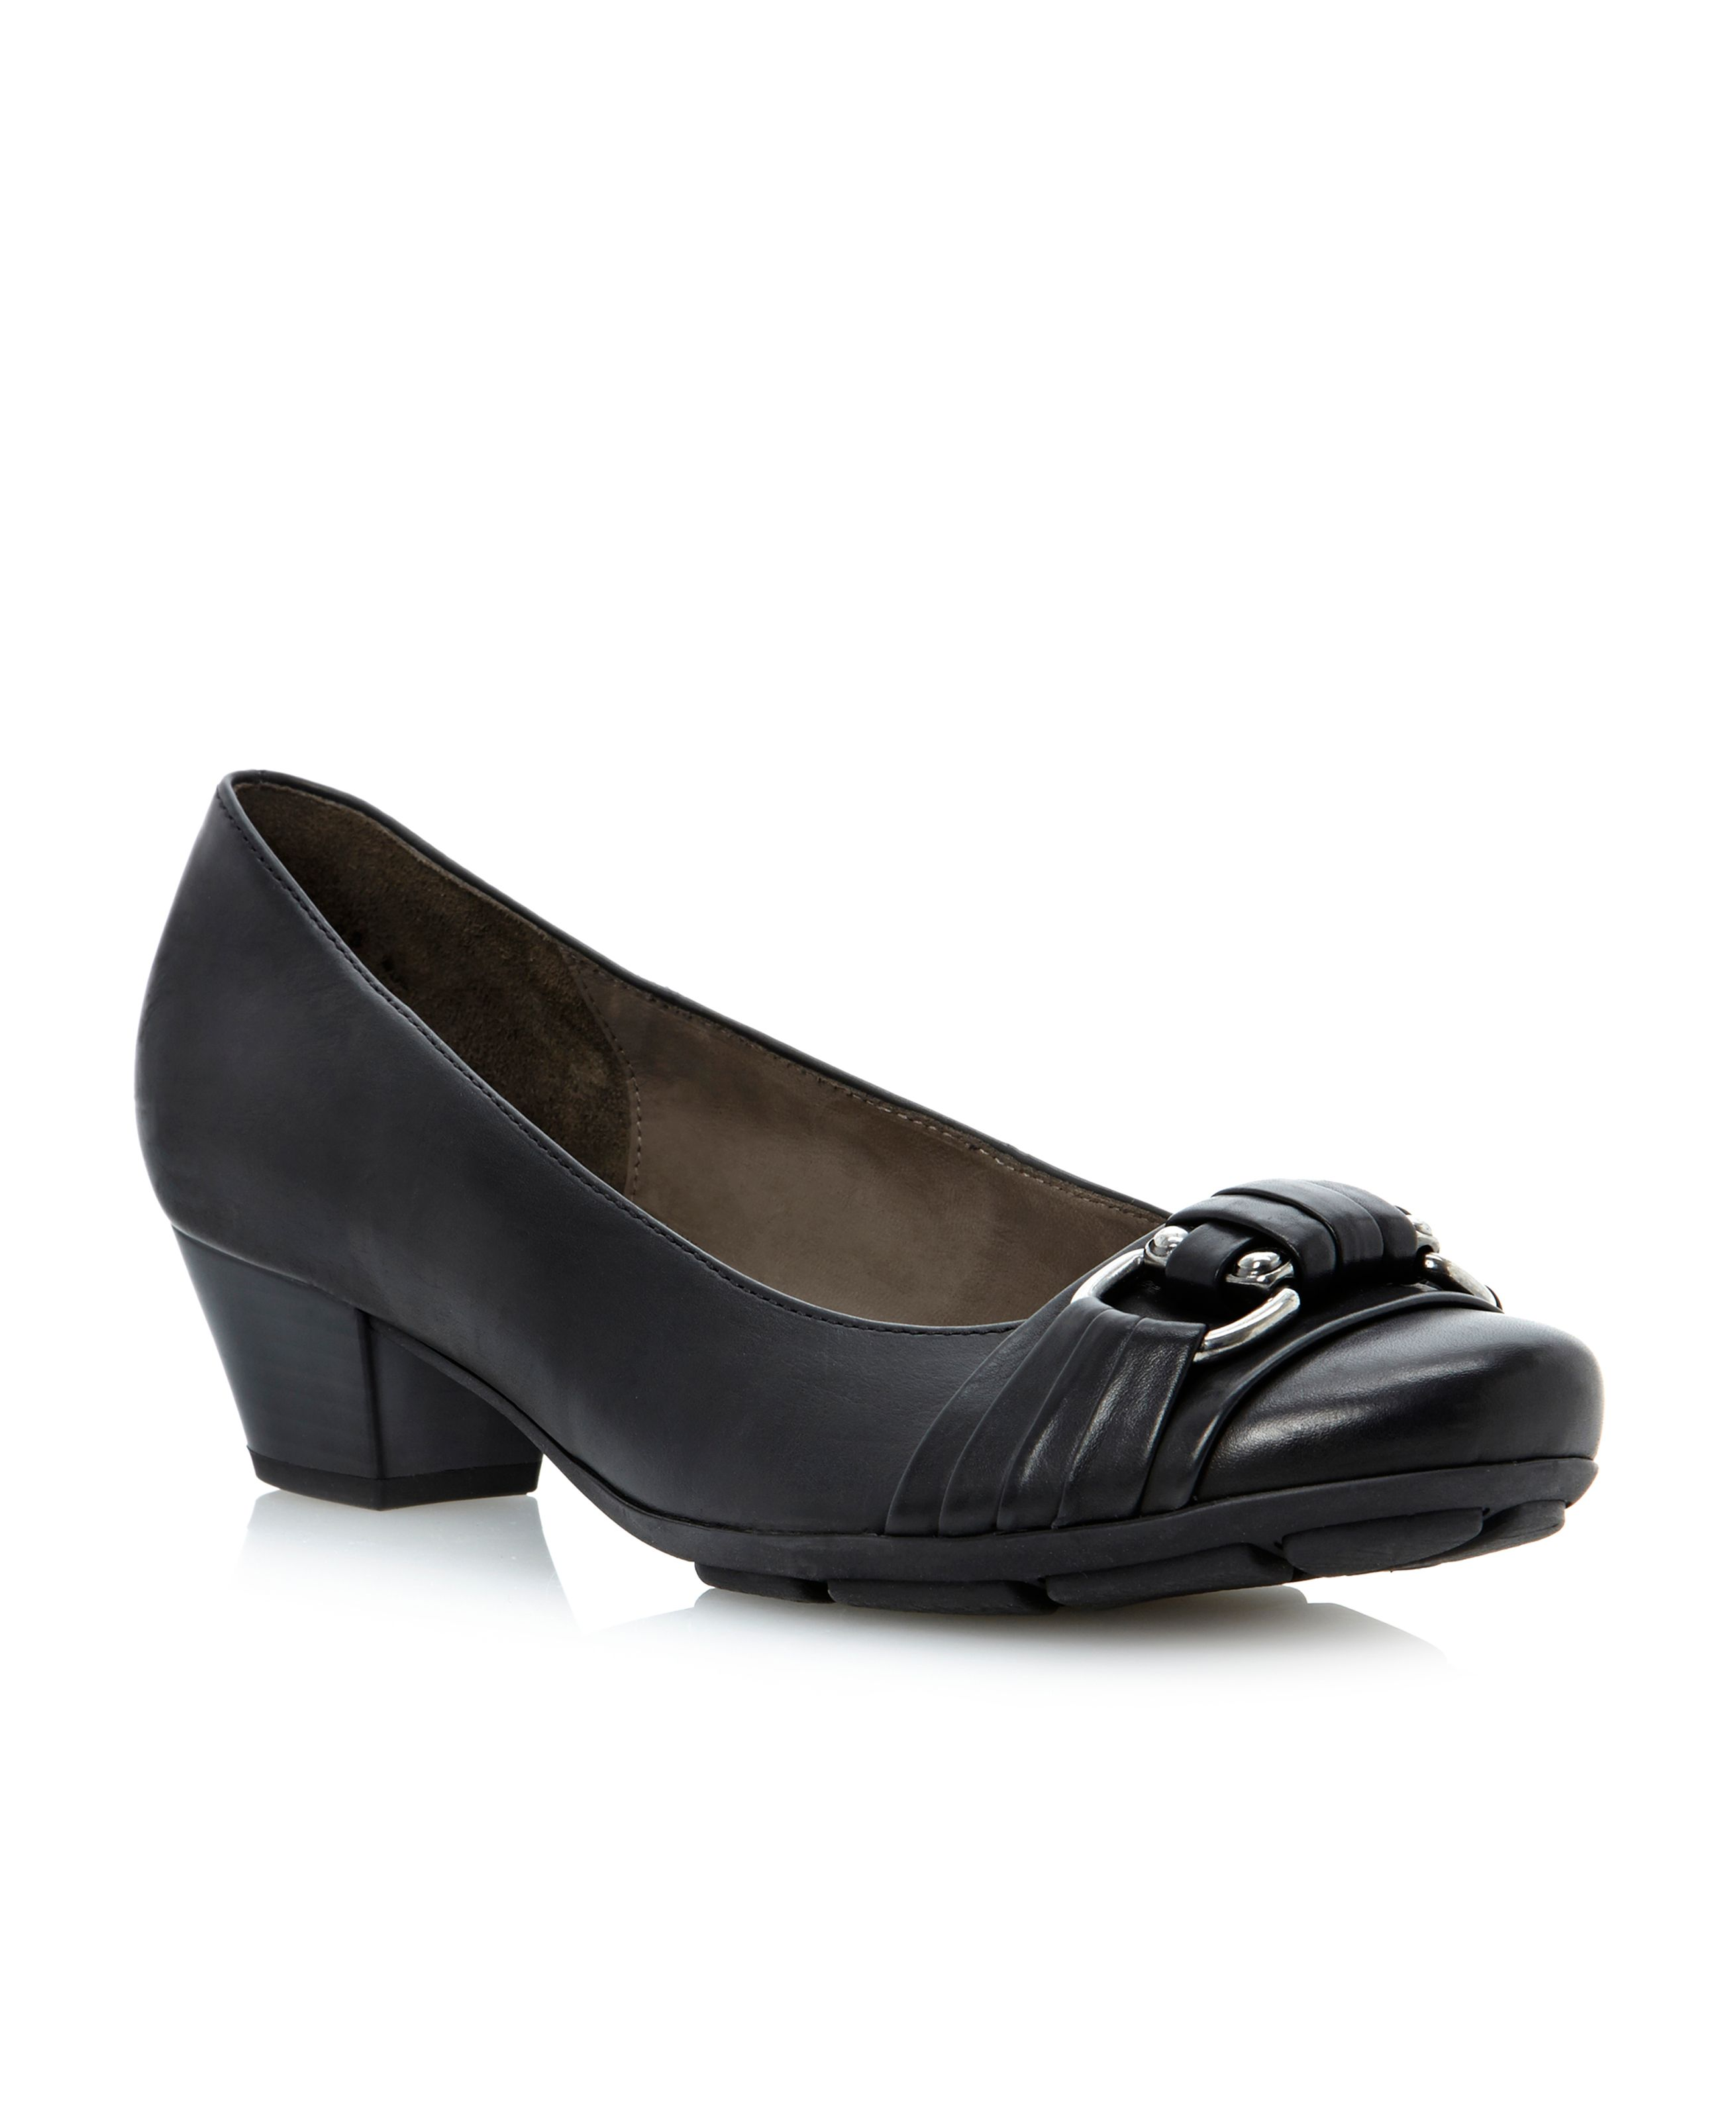 Focus buckle trim court shoes